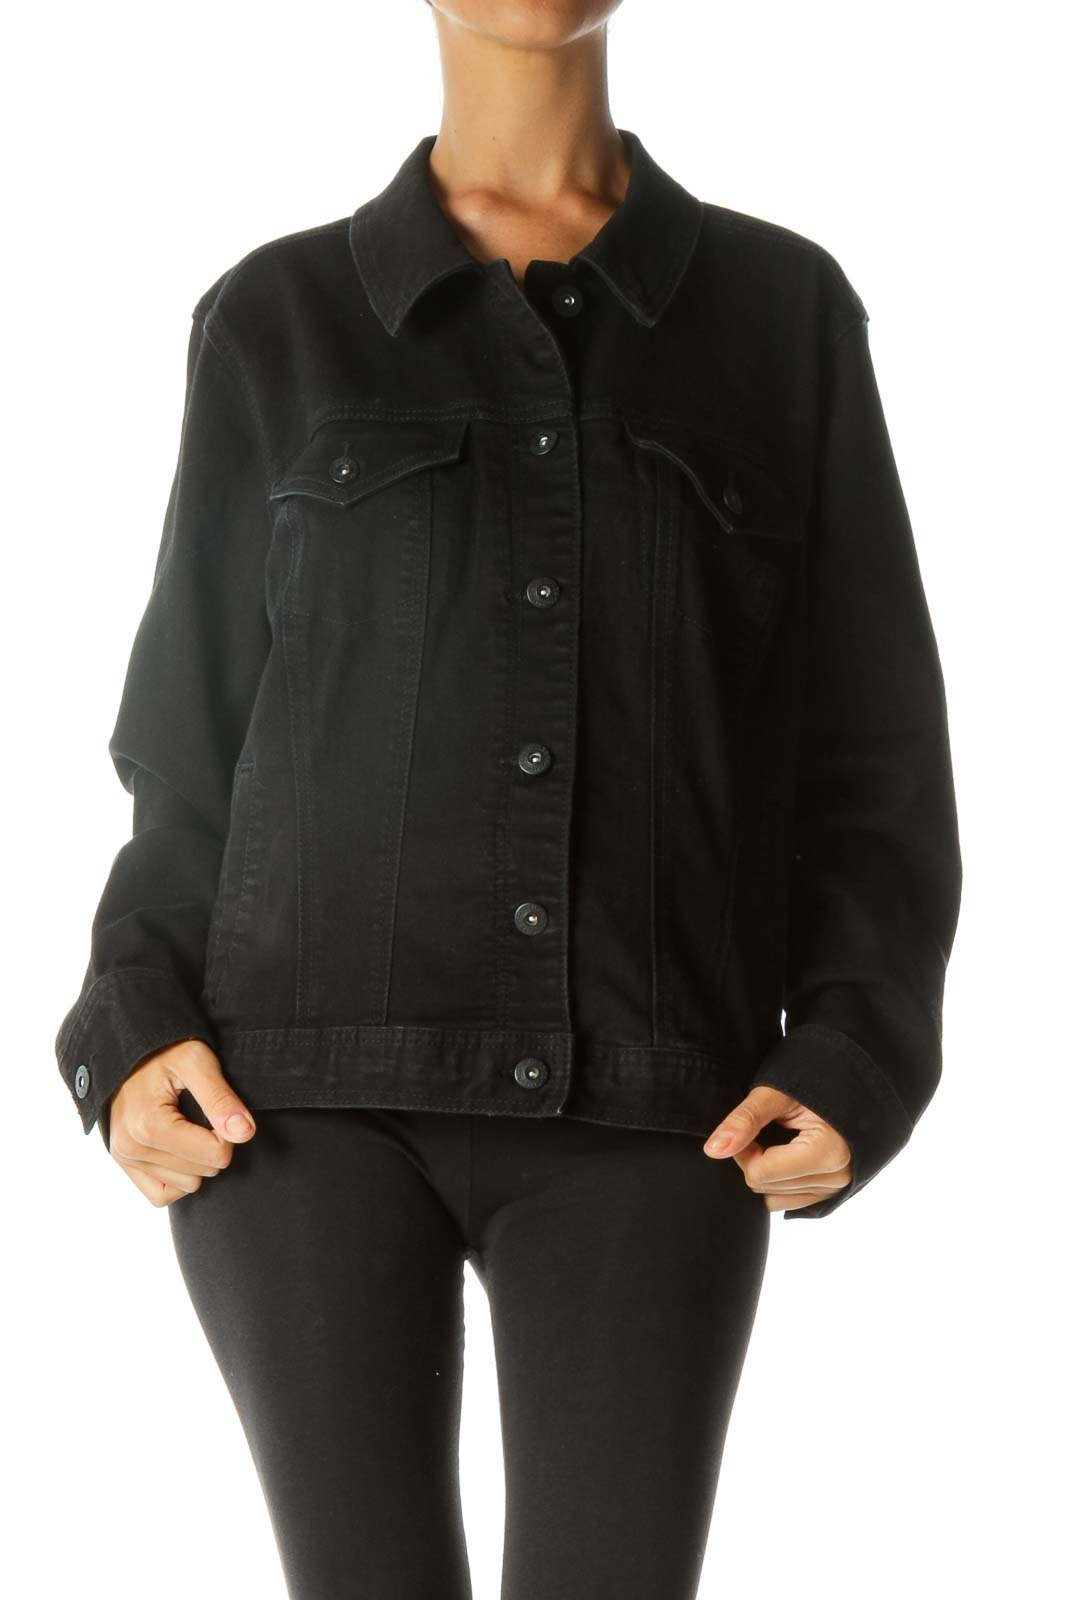 Black Buttoned Pocketed Long Sleeve Denim Look Jacket